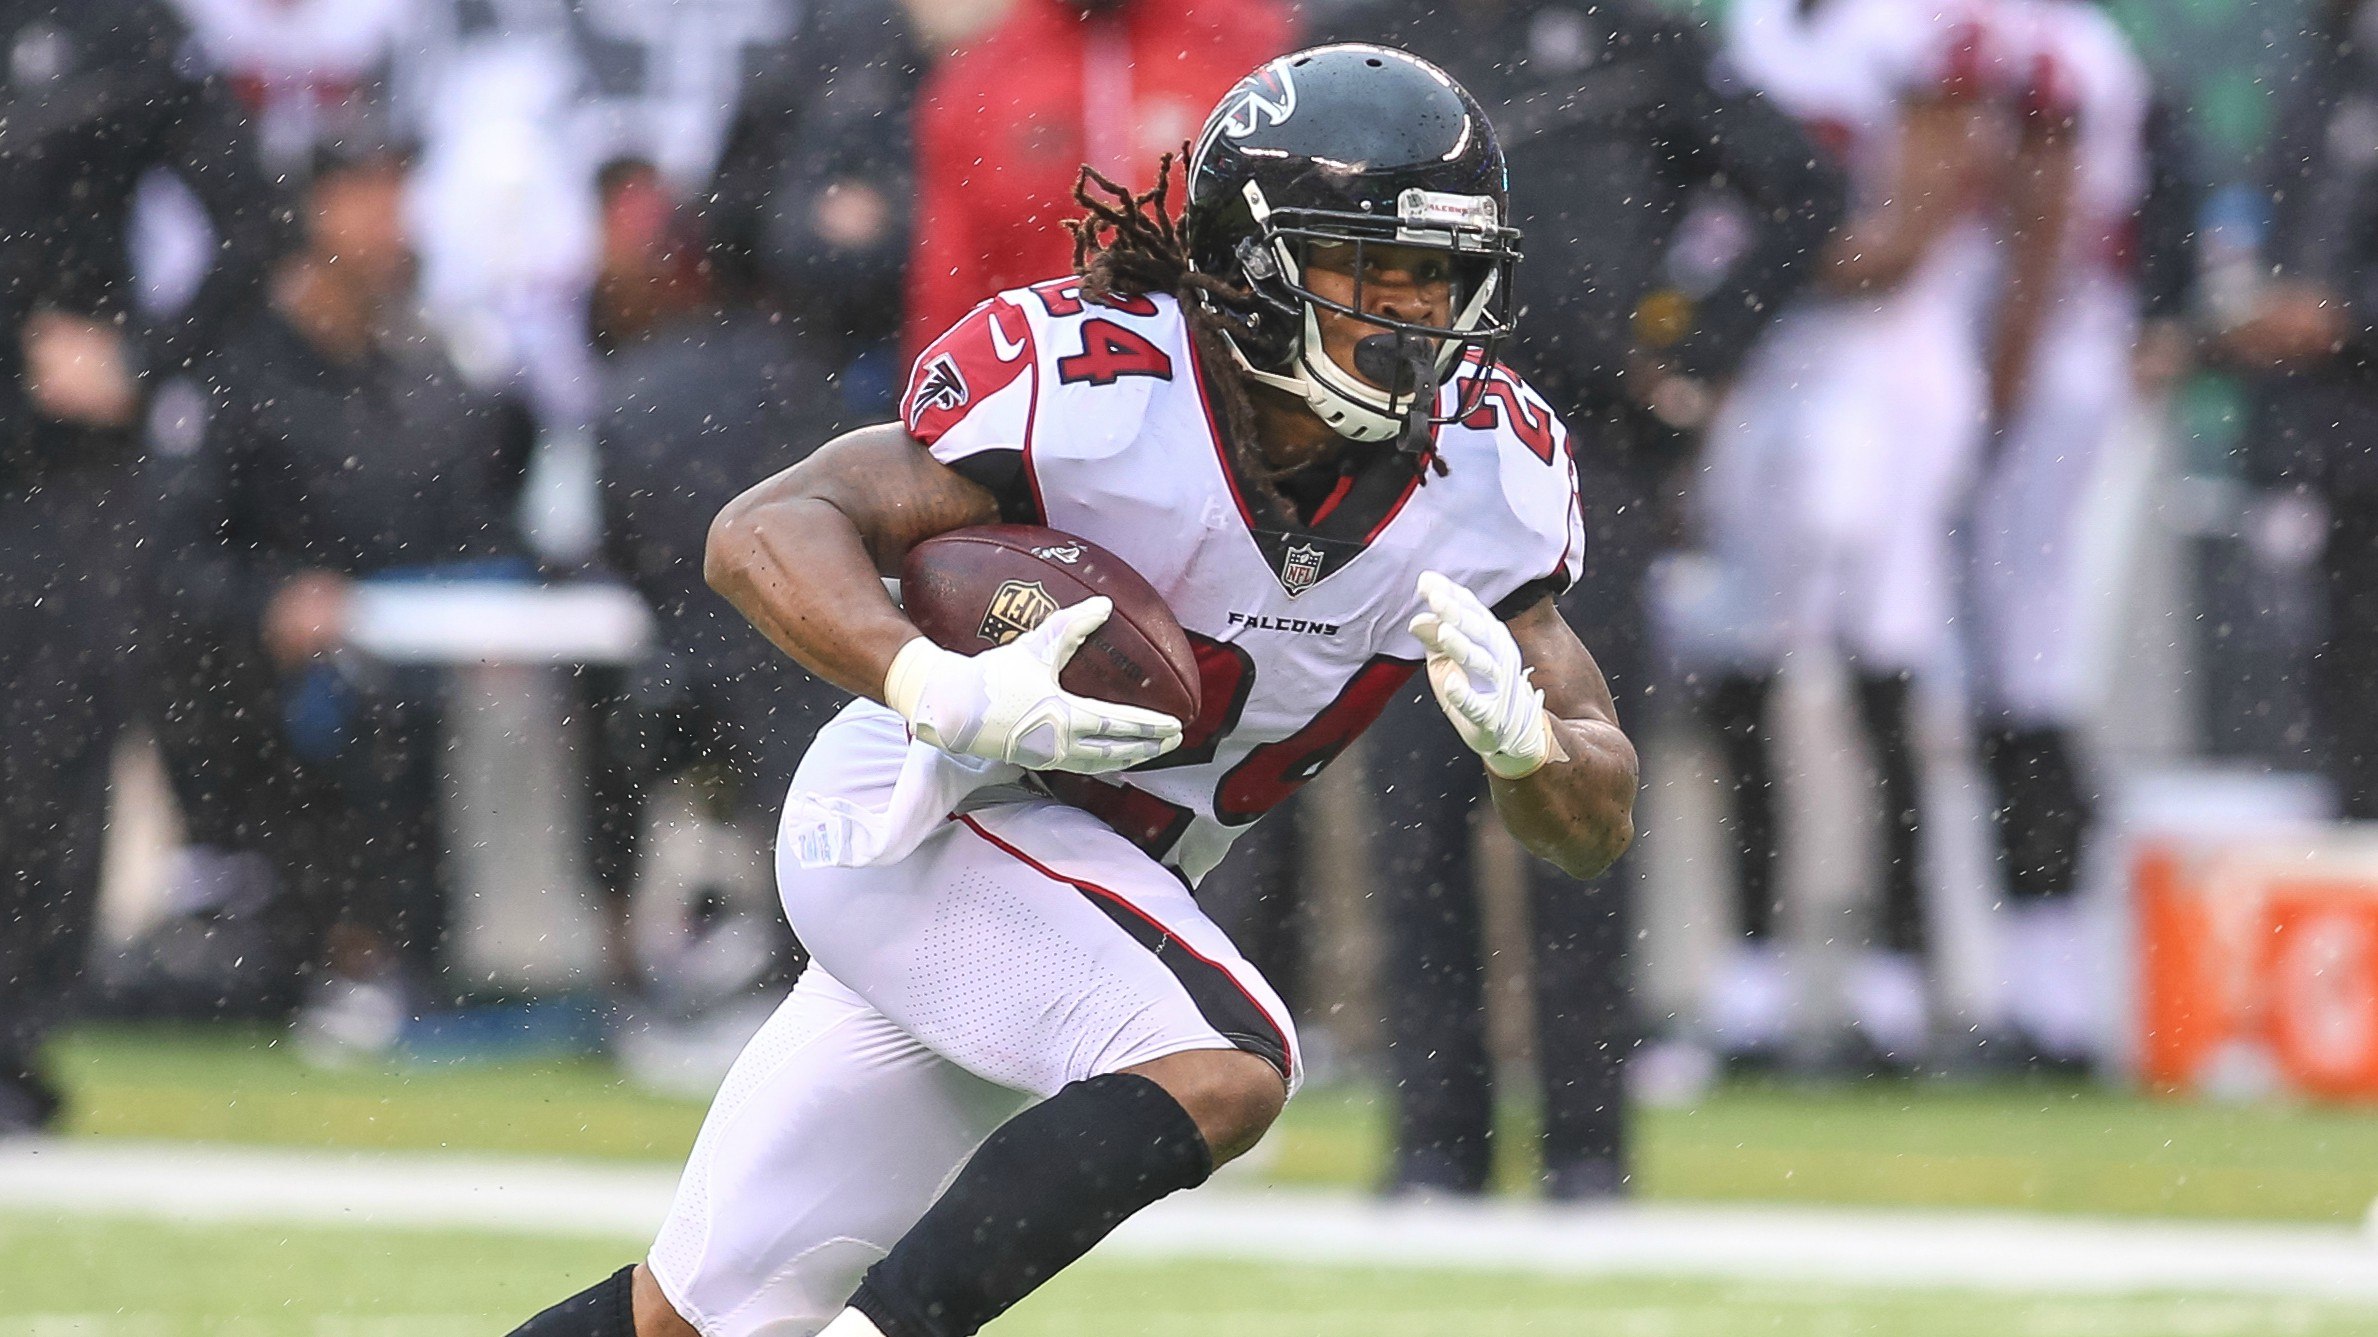 Devonta Freeman Falcons RB out with concussion